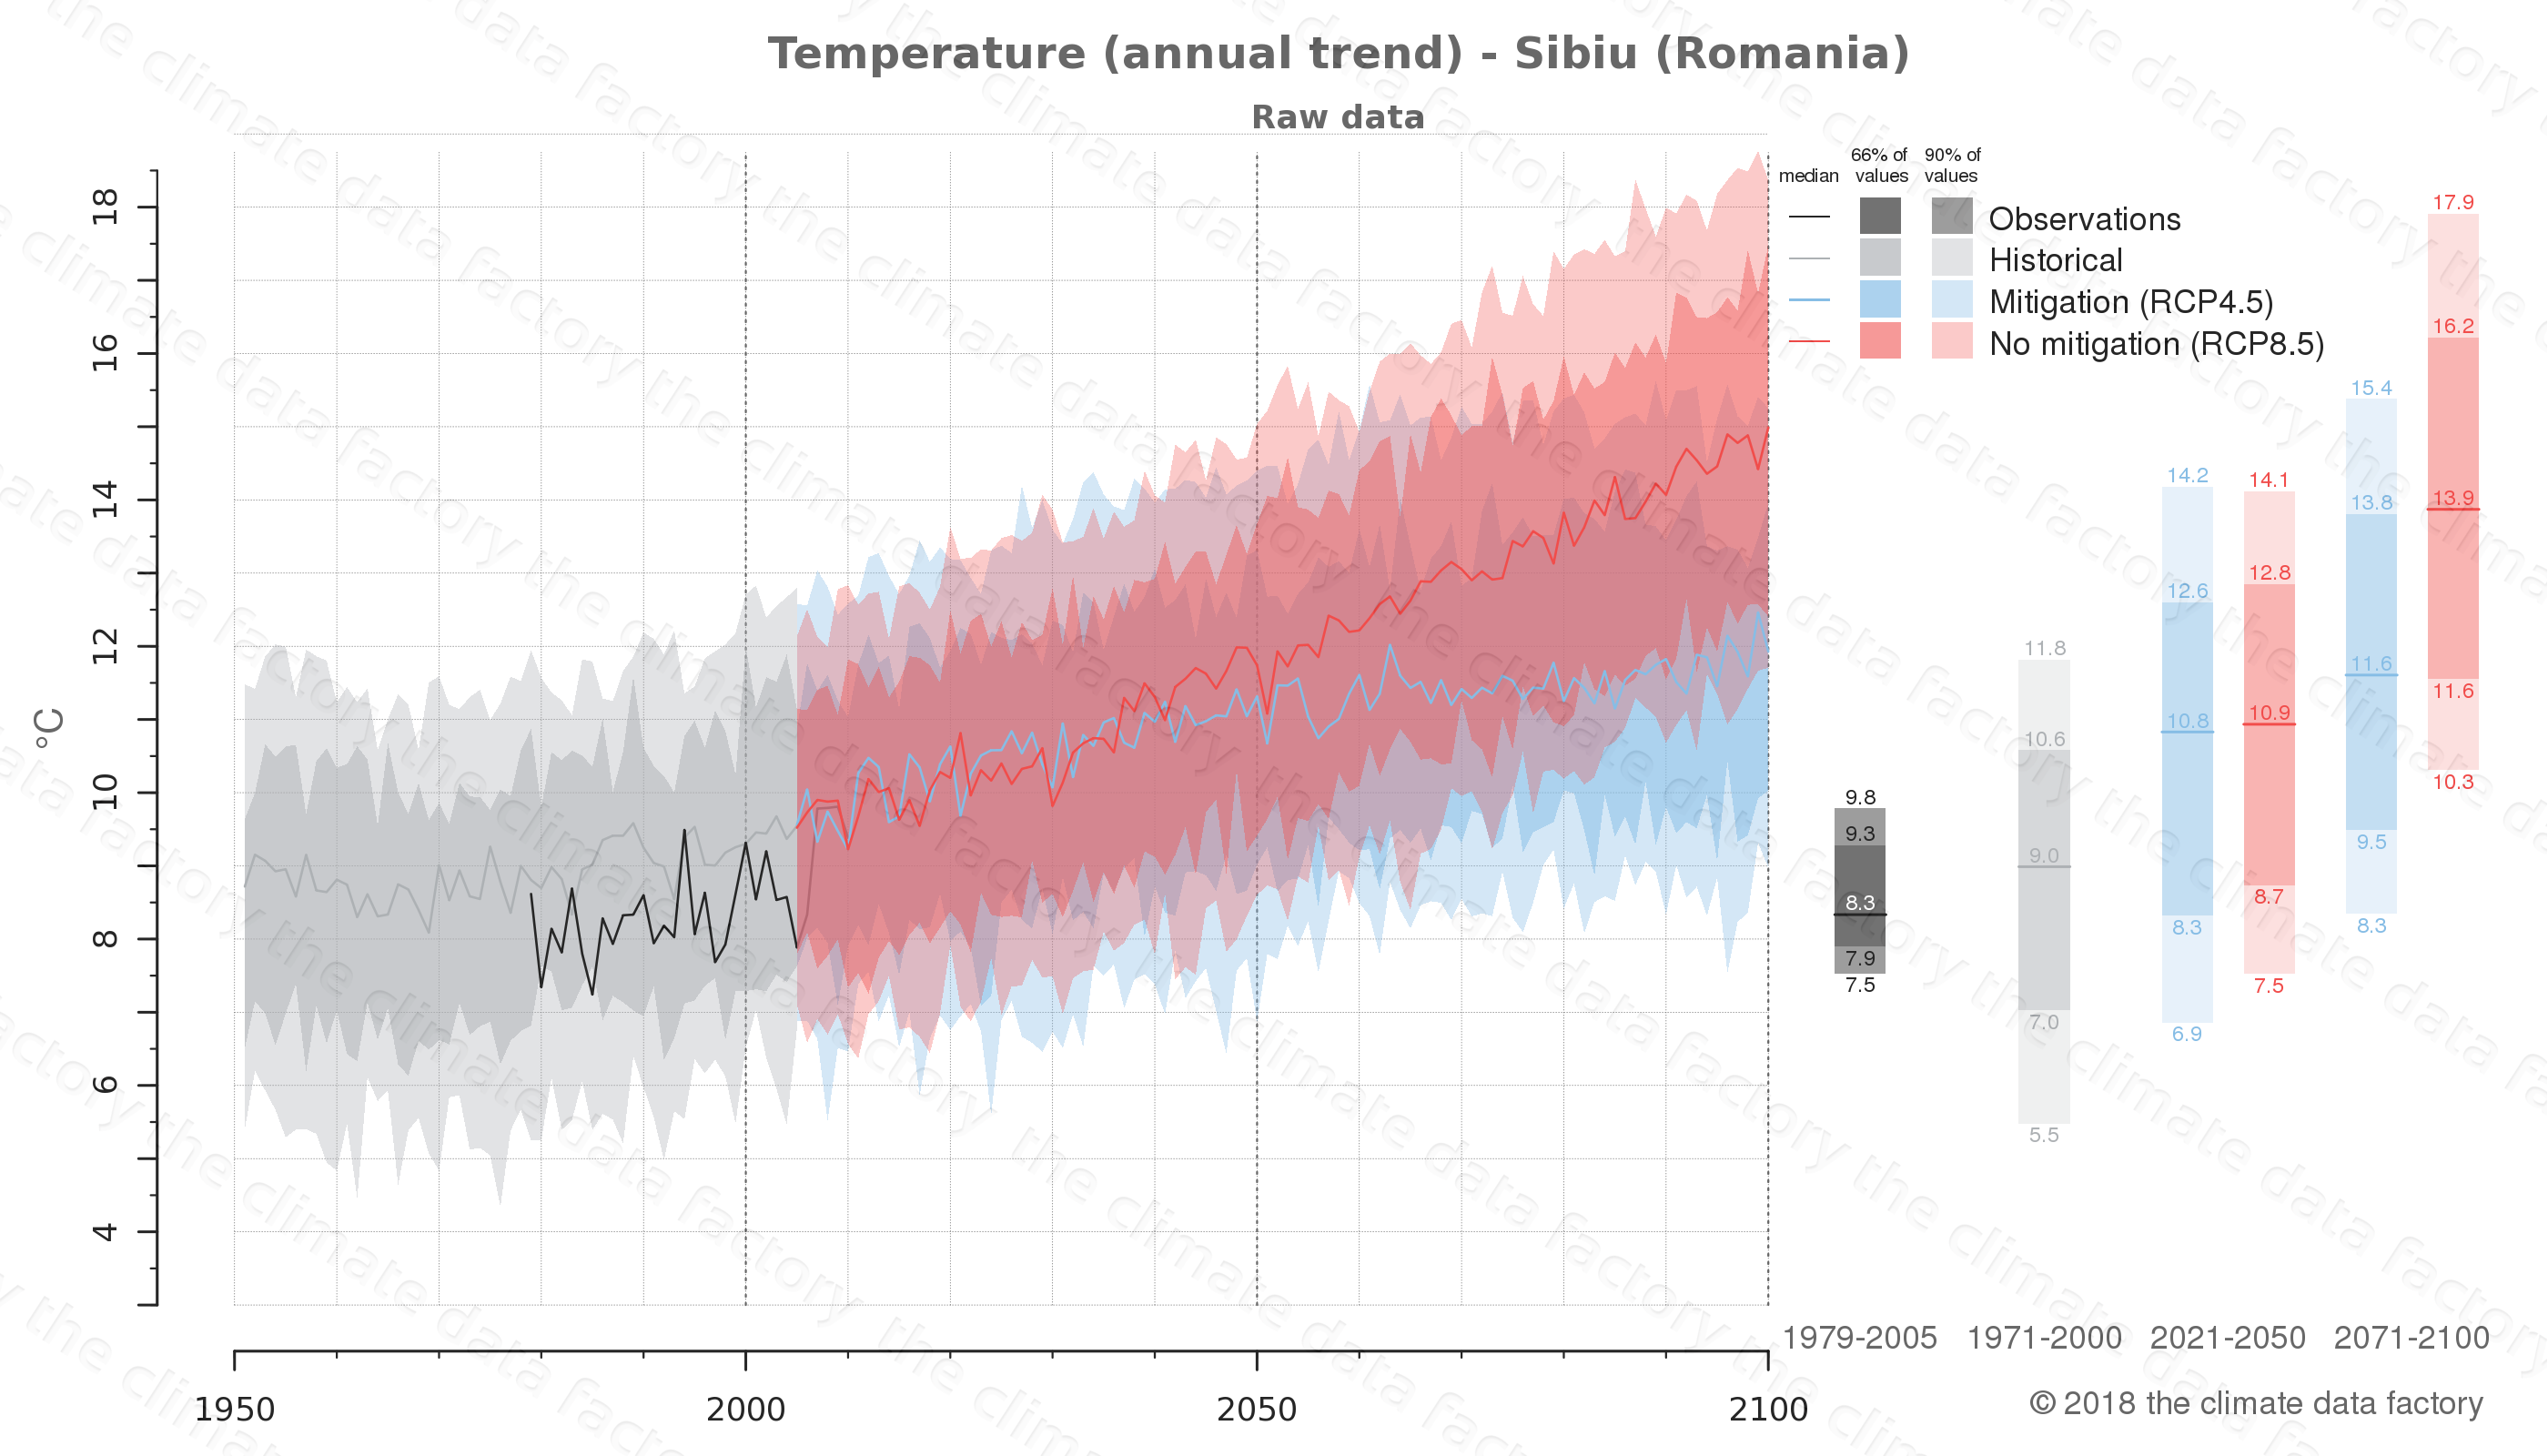 climate change data policy adaptation climate graph city data temperature sibiu romania